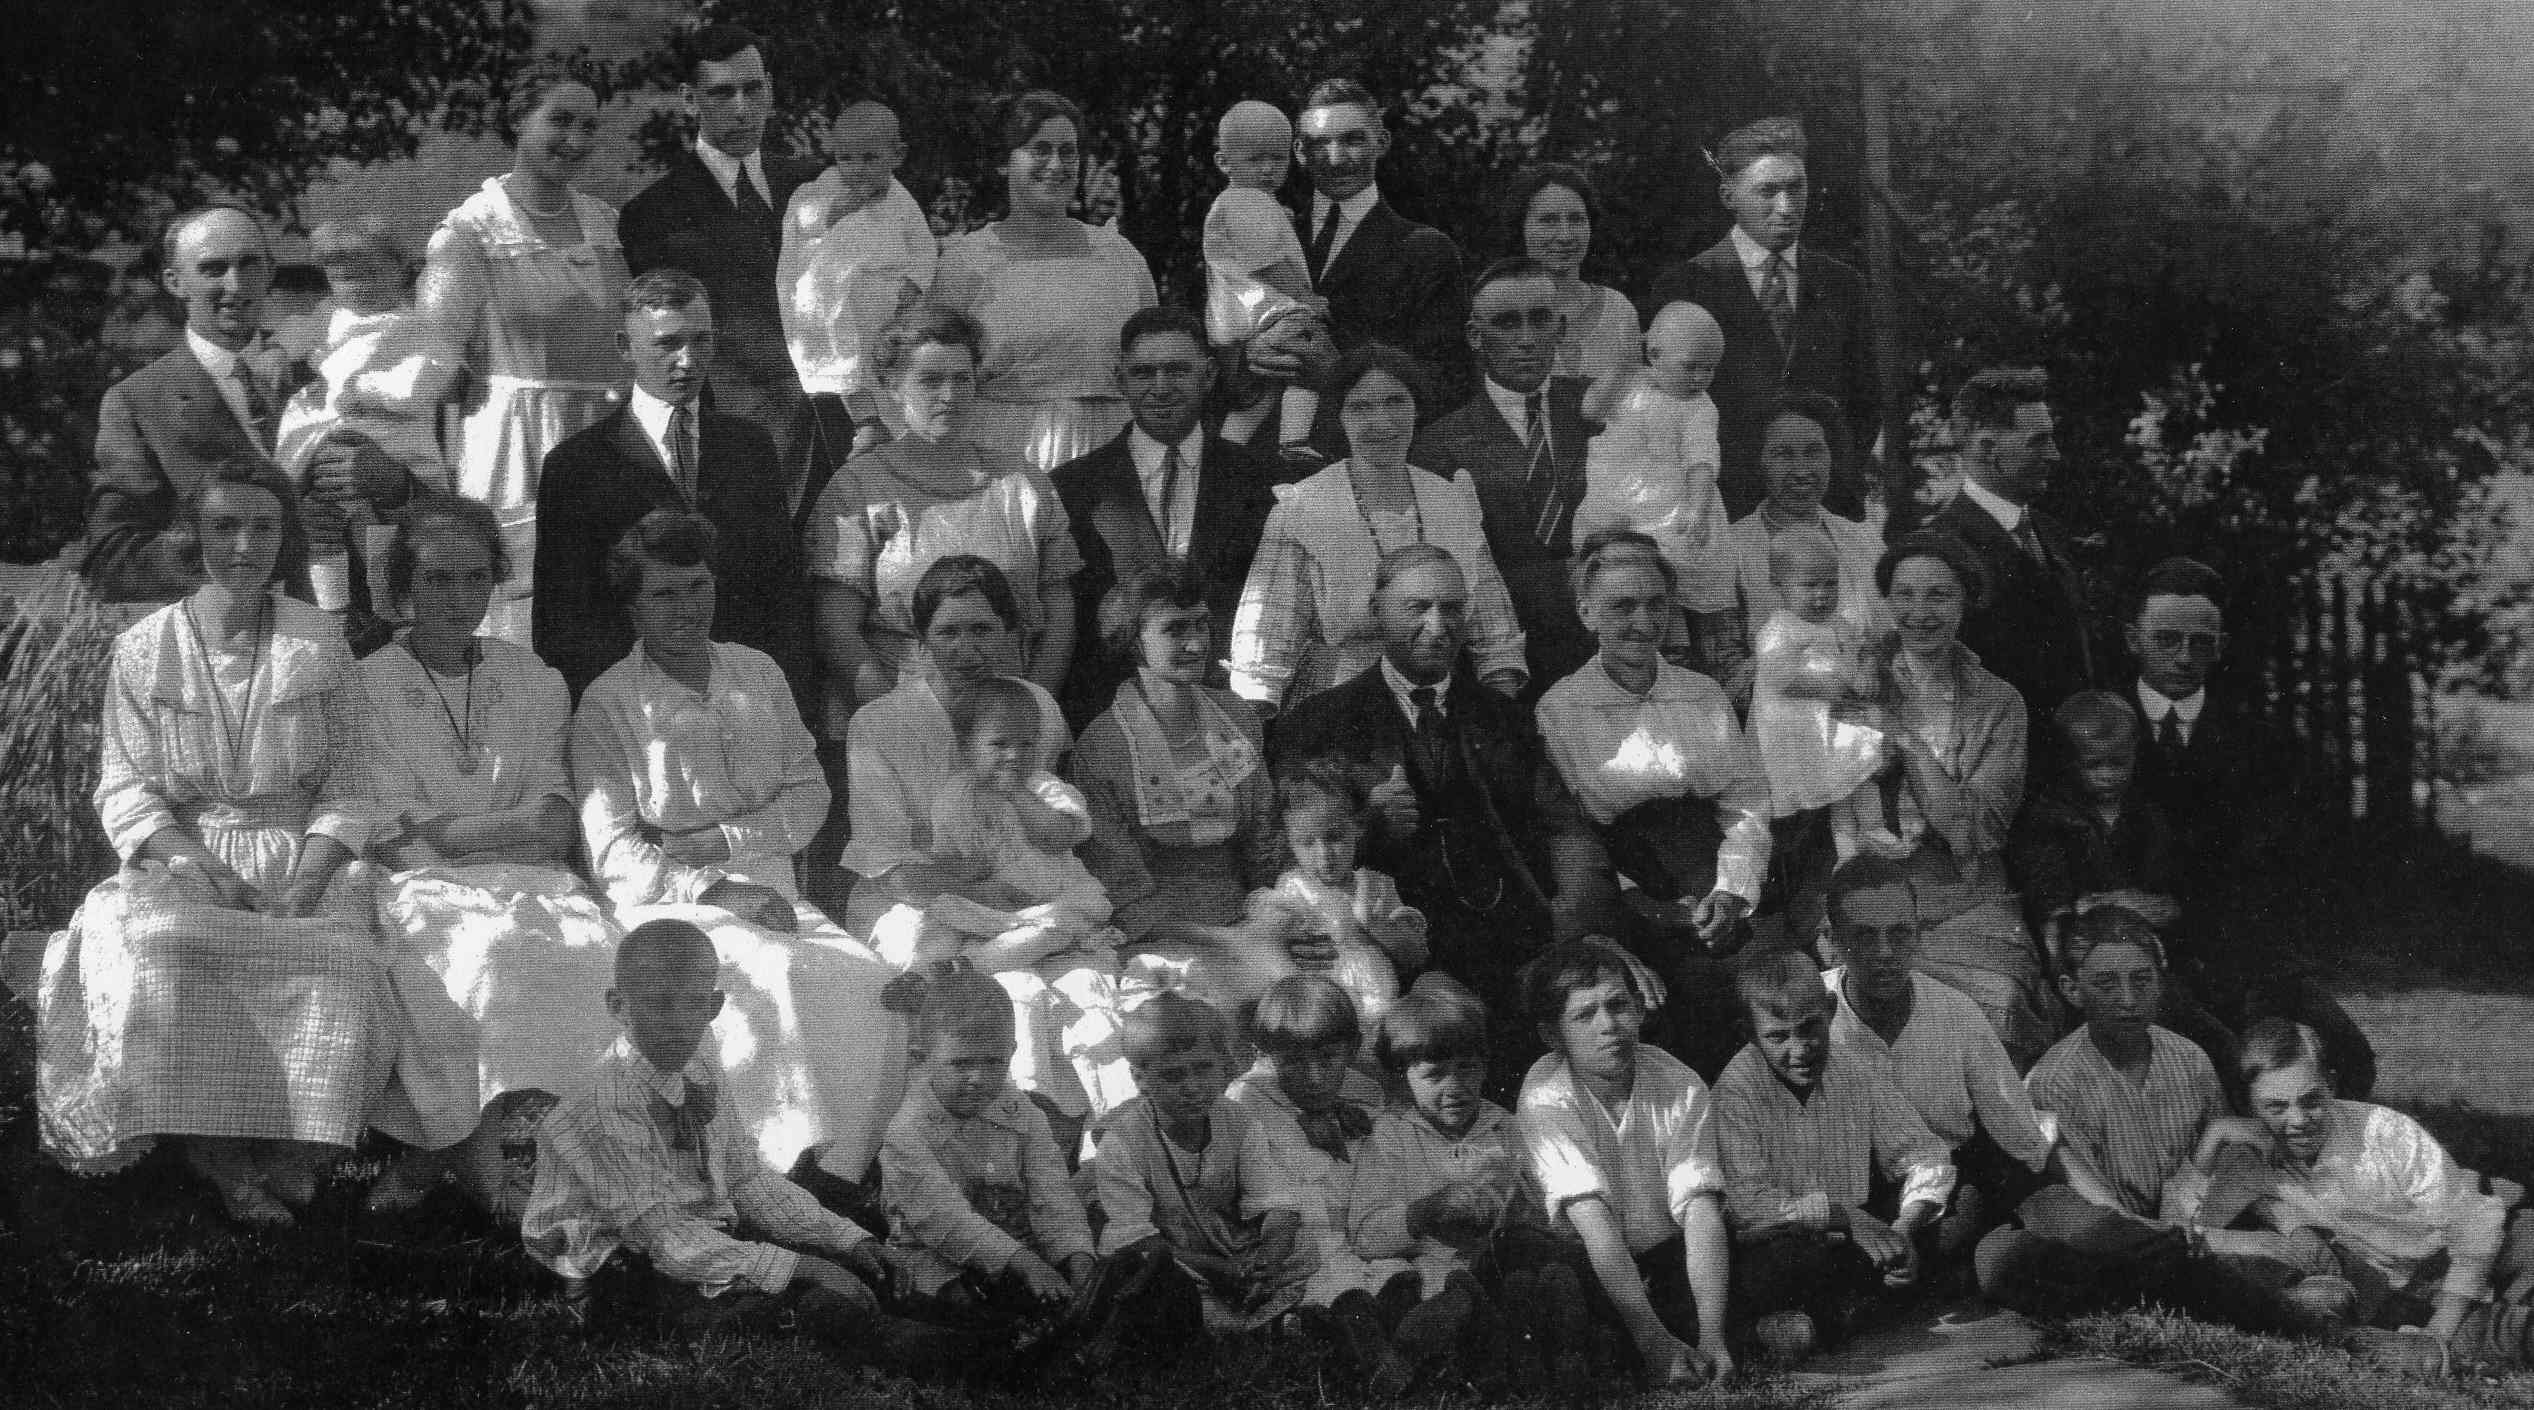 Peter Petenbrink extended family photo.